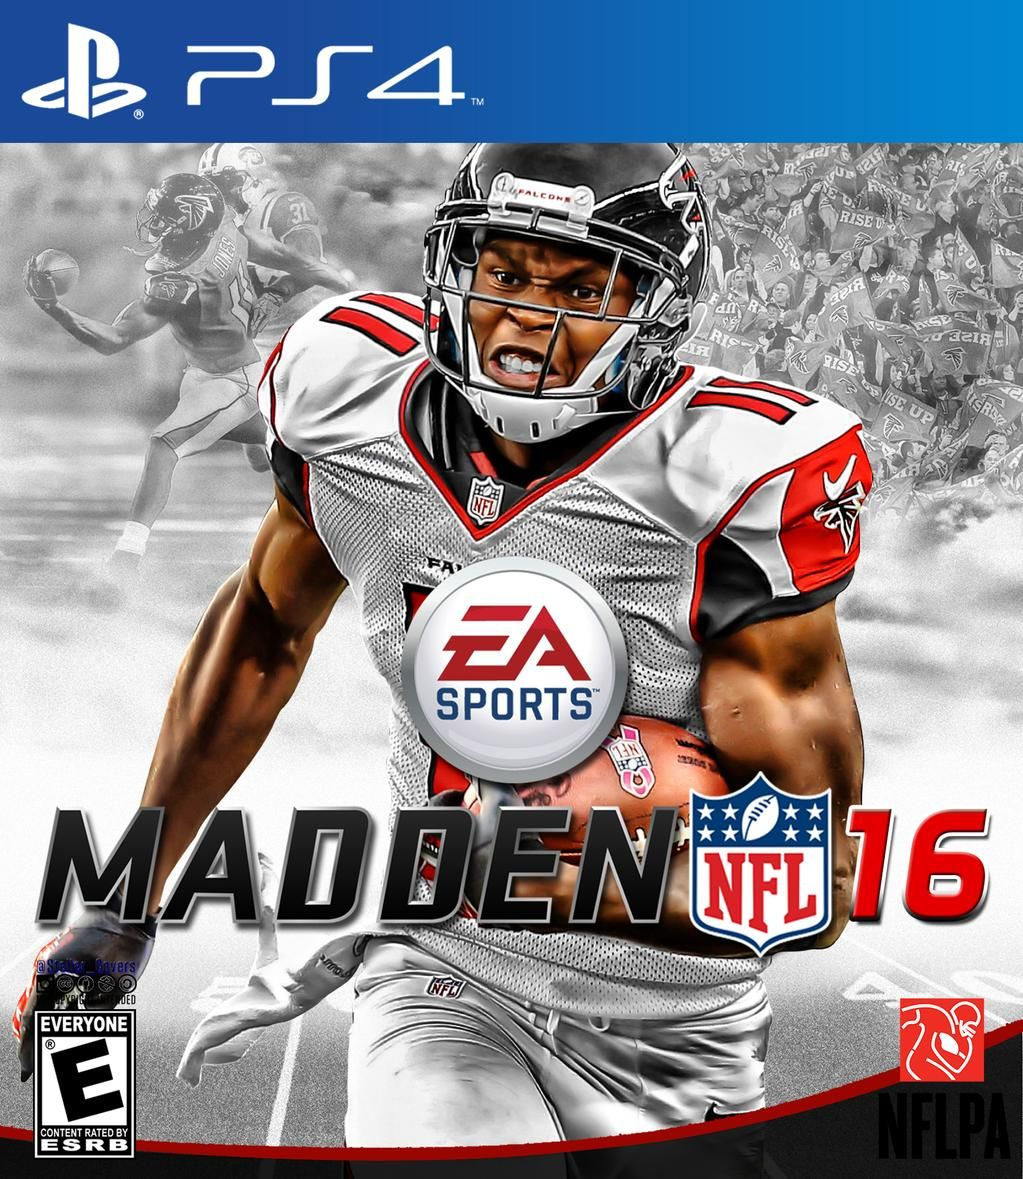 Madden 16 Covers - Page 6 of 8 - NFLRT | Poket Gaming's Game of the